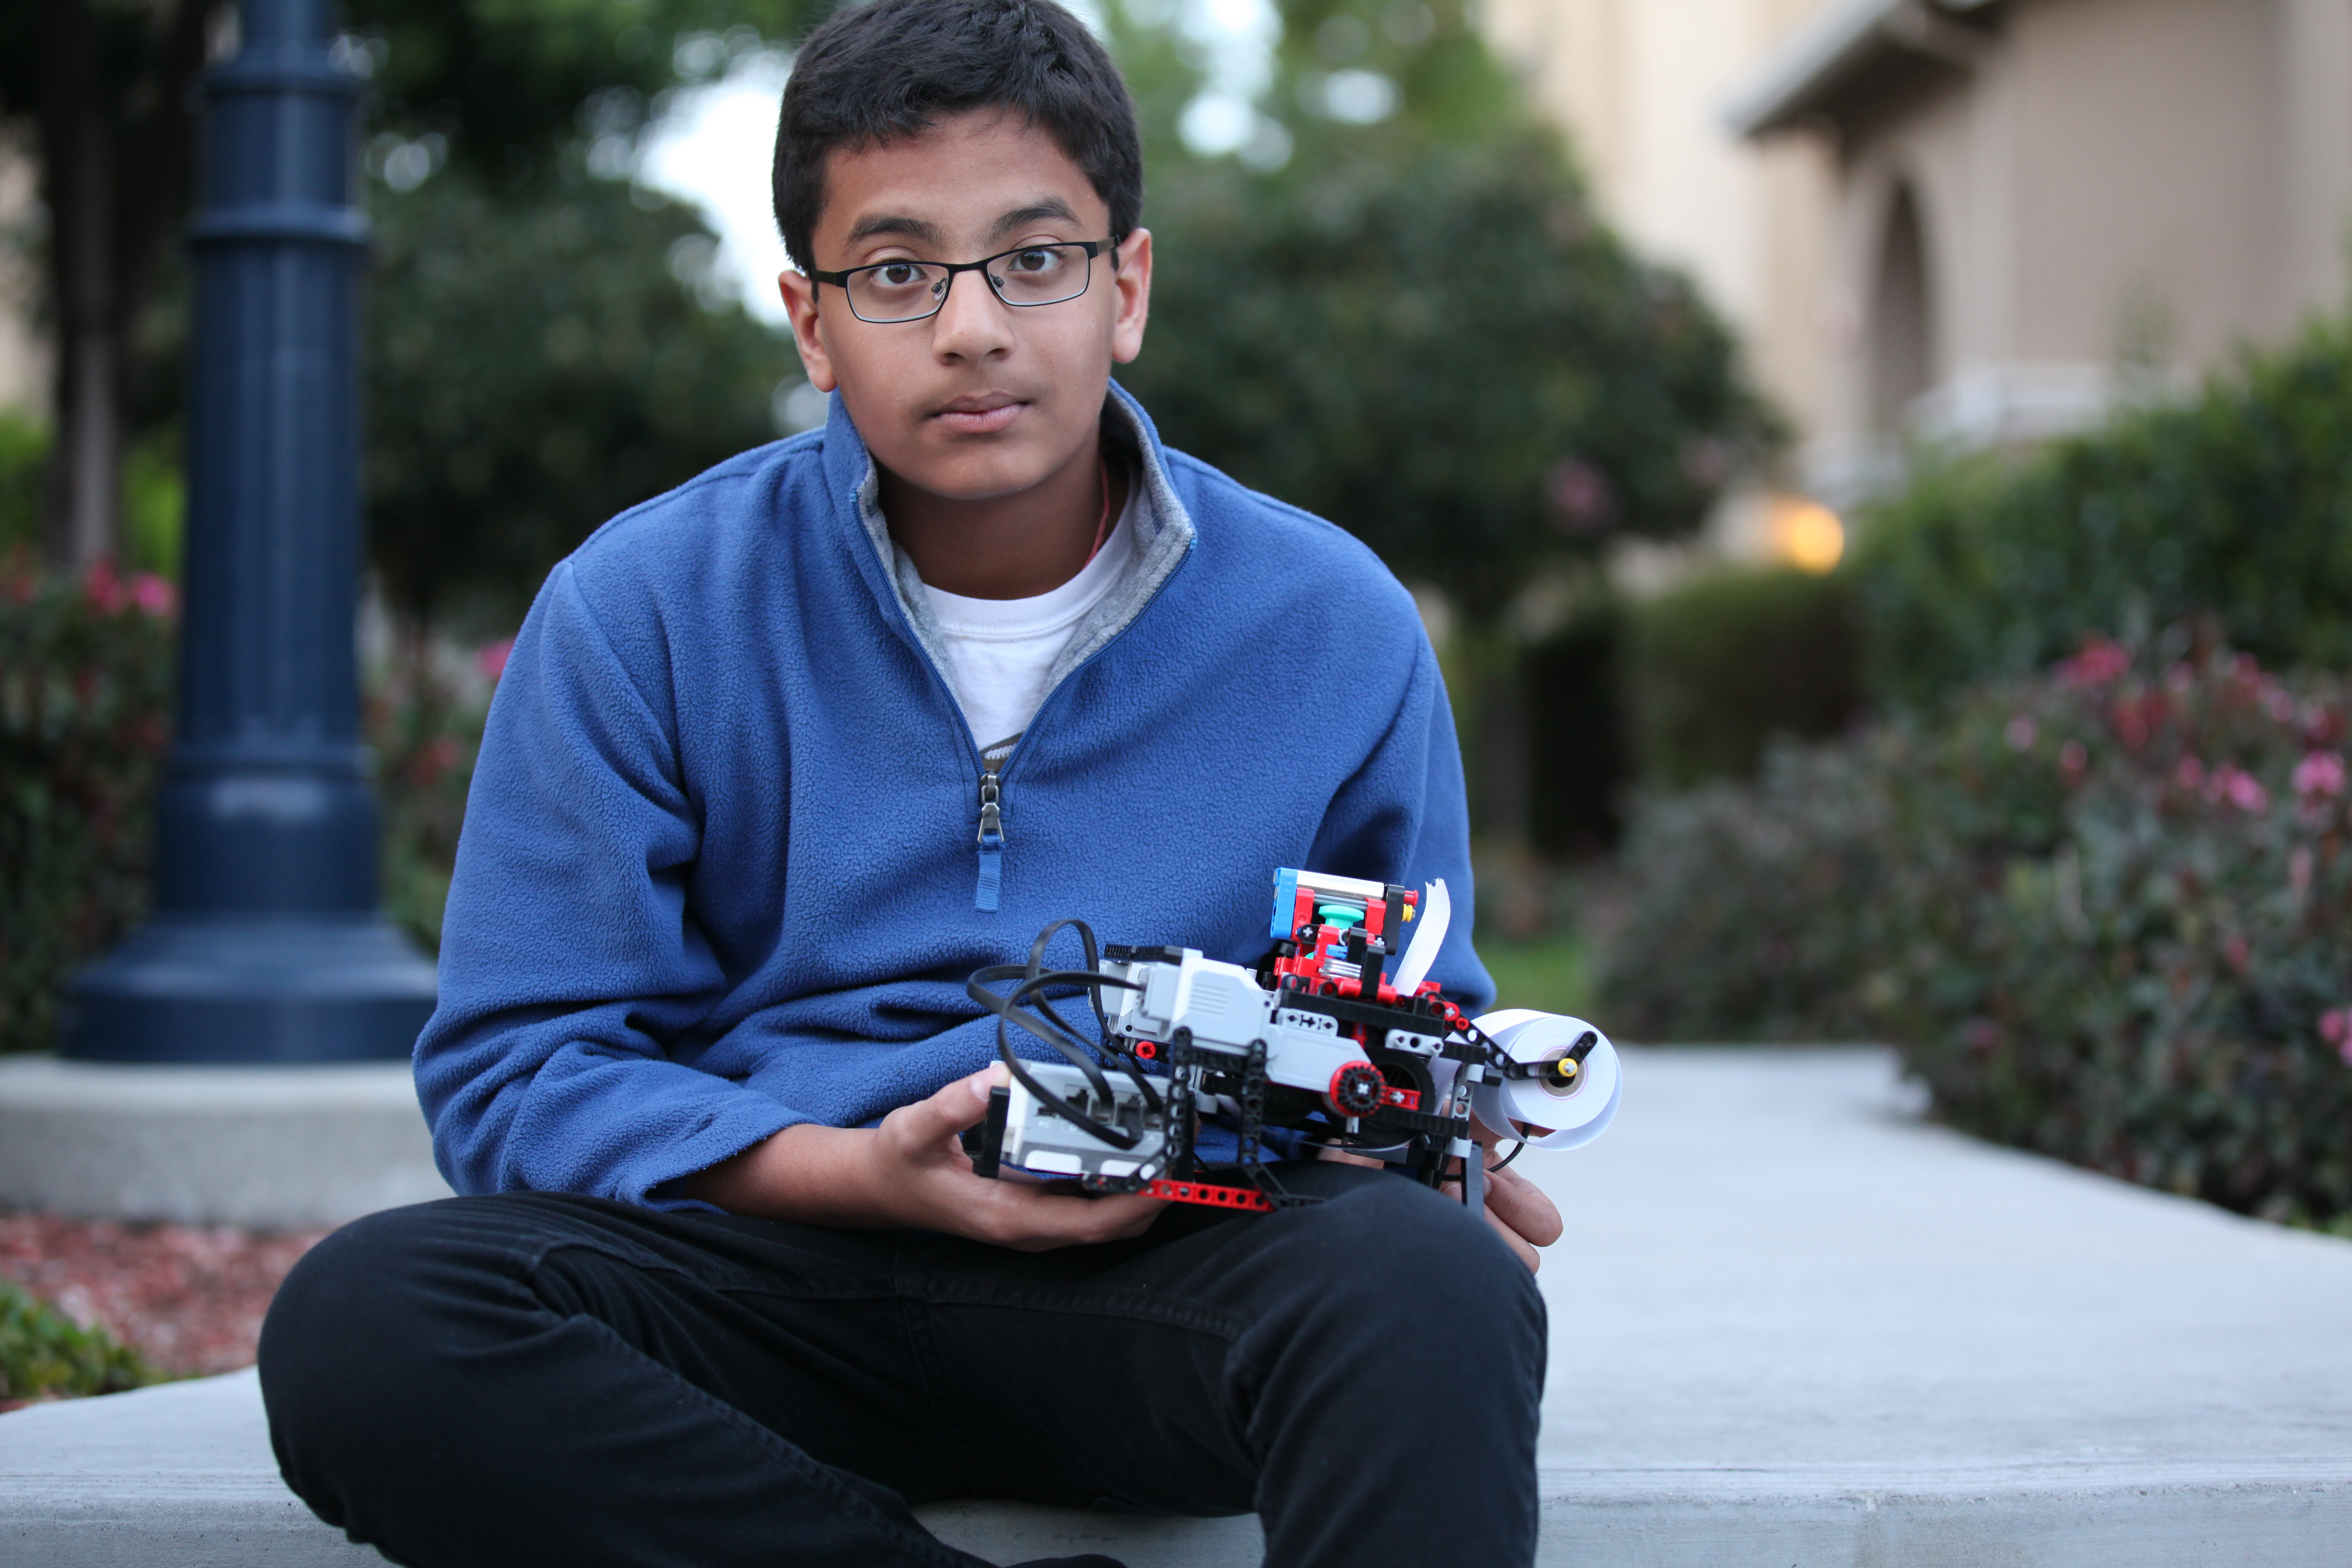 Shubham Banerjee with the braille printer